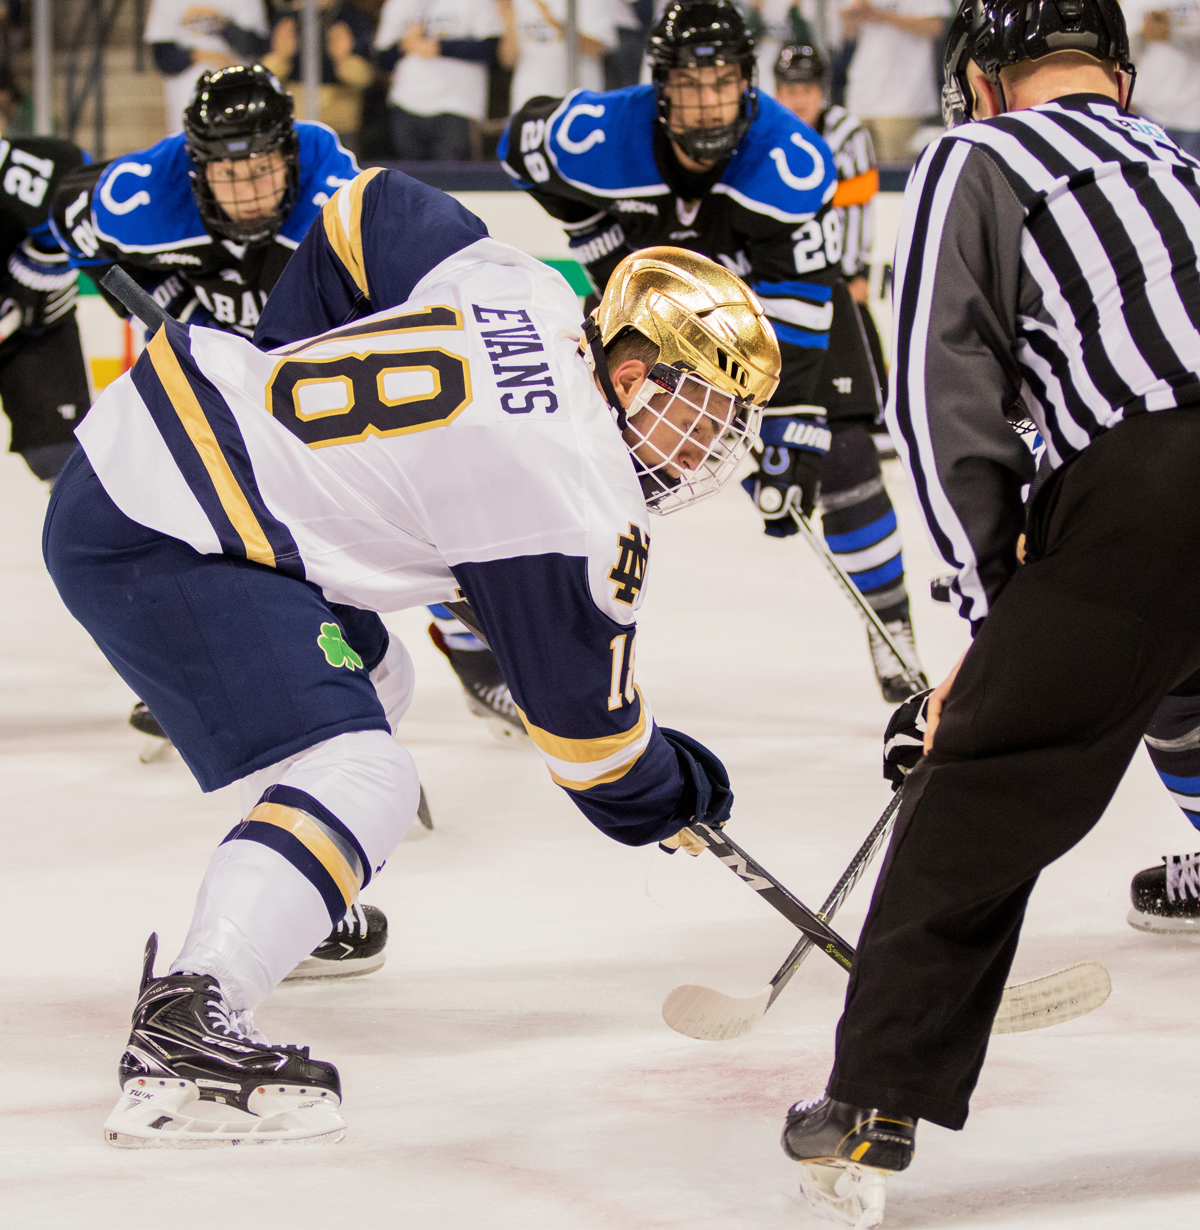 Irish senior forward Jake Evans prepares for the puck to drop during a faceoff in Notre Dame's 5-3 win over Alabama-Huntsville on Friday.